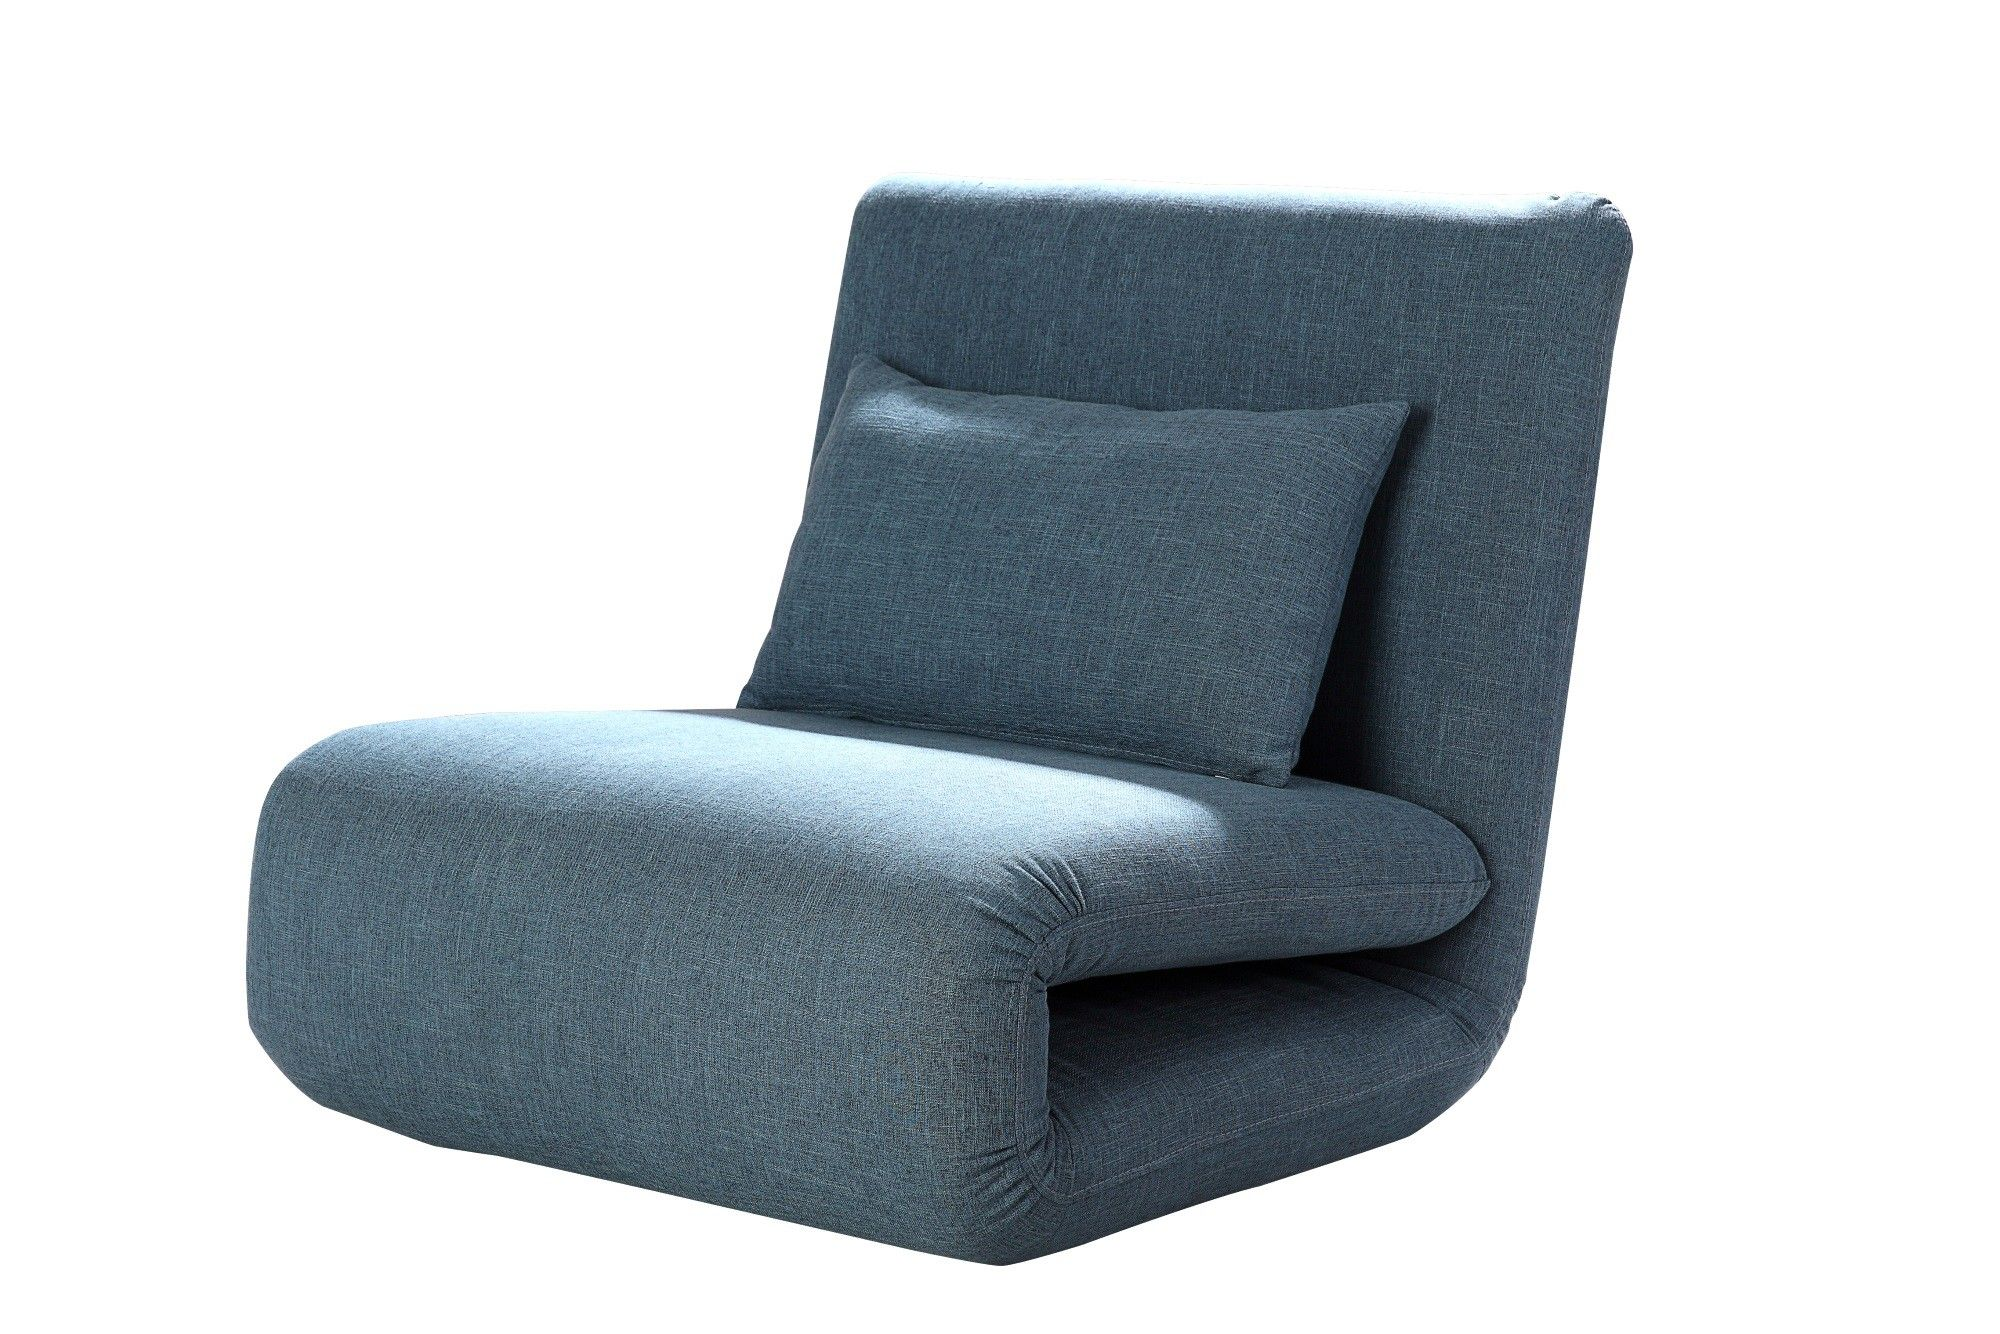 Ideal To Welcome A Friend Fauteuil Design Fauteuil Confortable Fauteuil